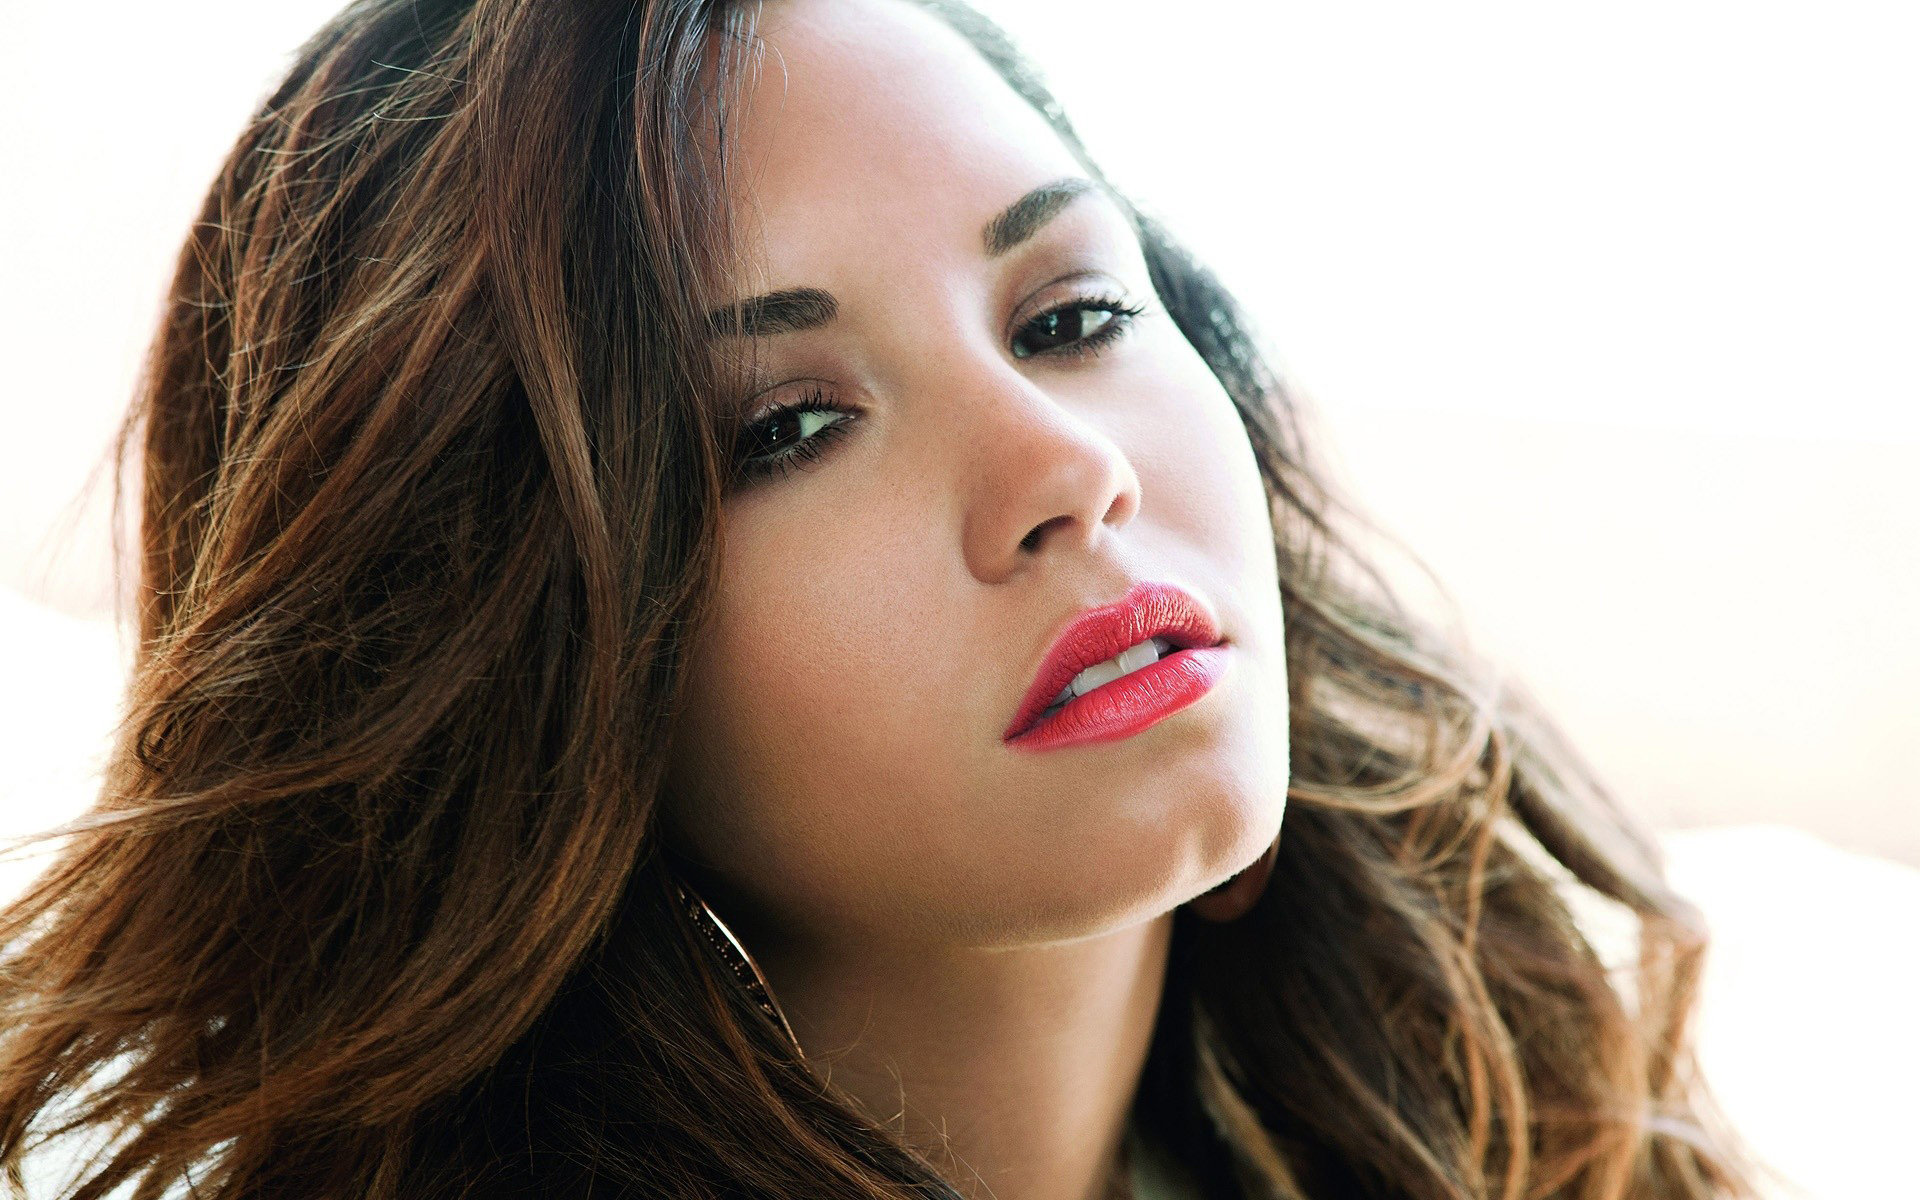 Demi Lovato 2015 Wallpapers HD Wallpapers 1920x1200